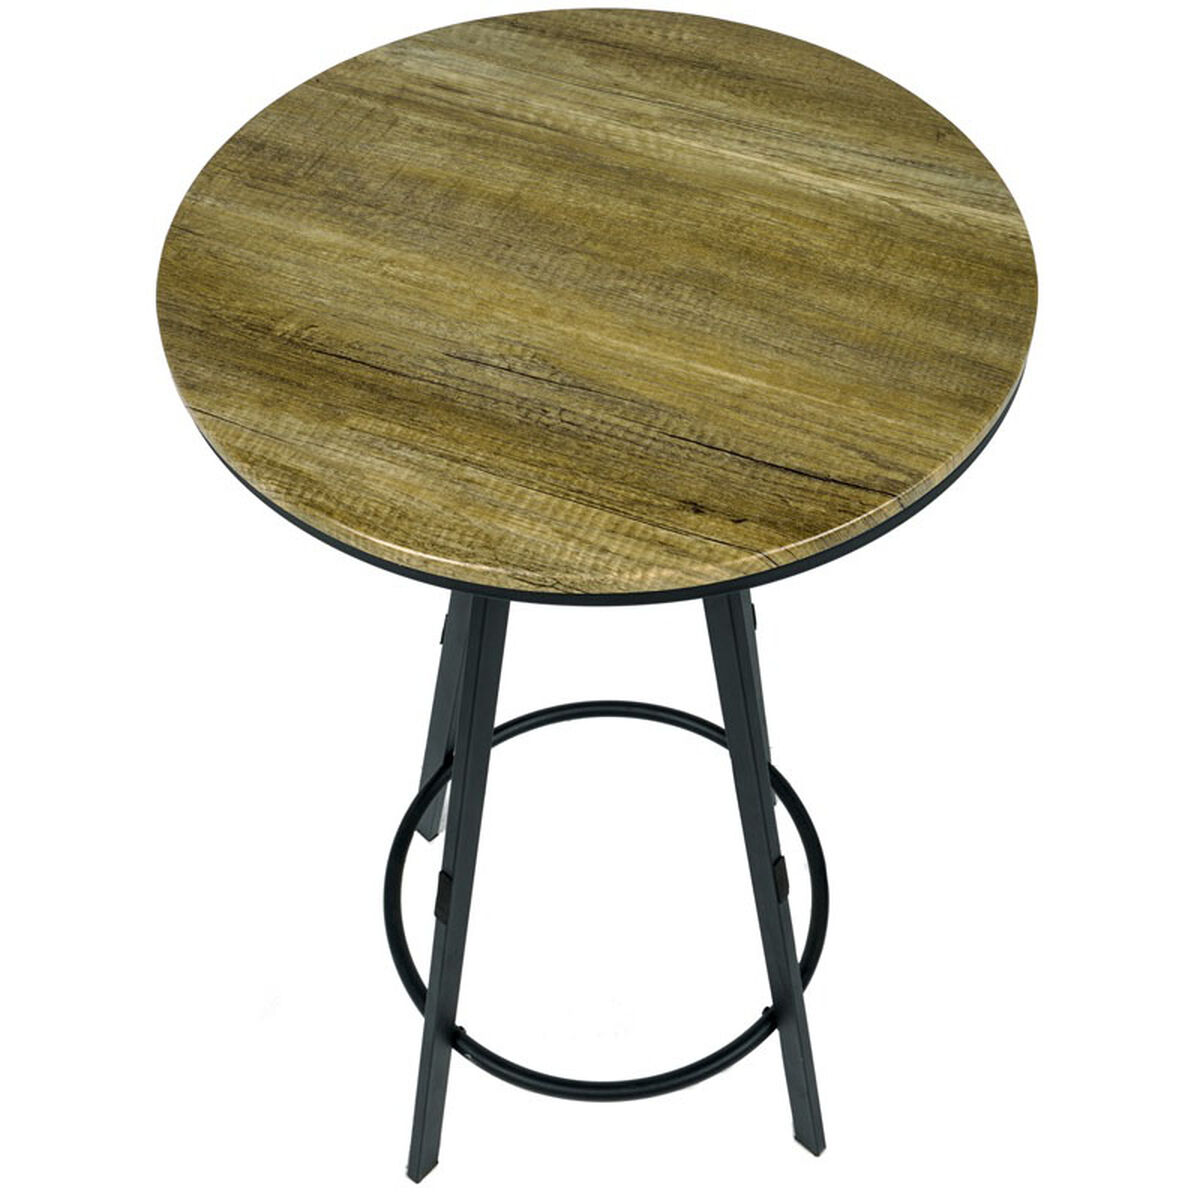 Standard Furniture Cosmo Adjustable Height Round Wood Top: Vintage Industrial Height Adjustable 24'' Round Swivel